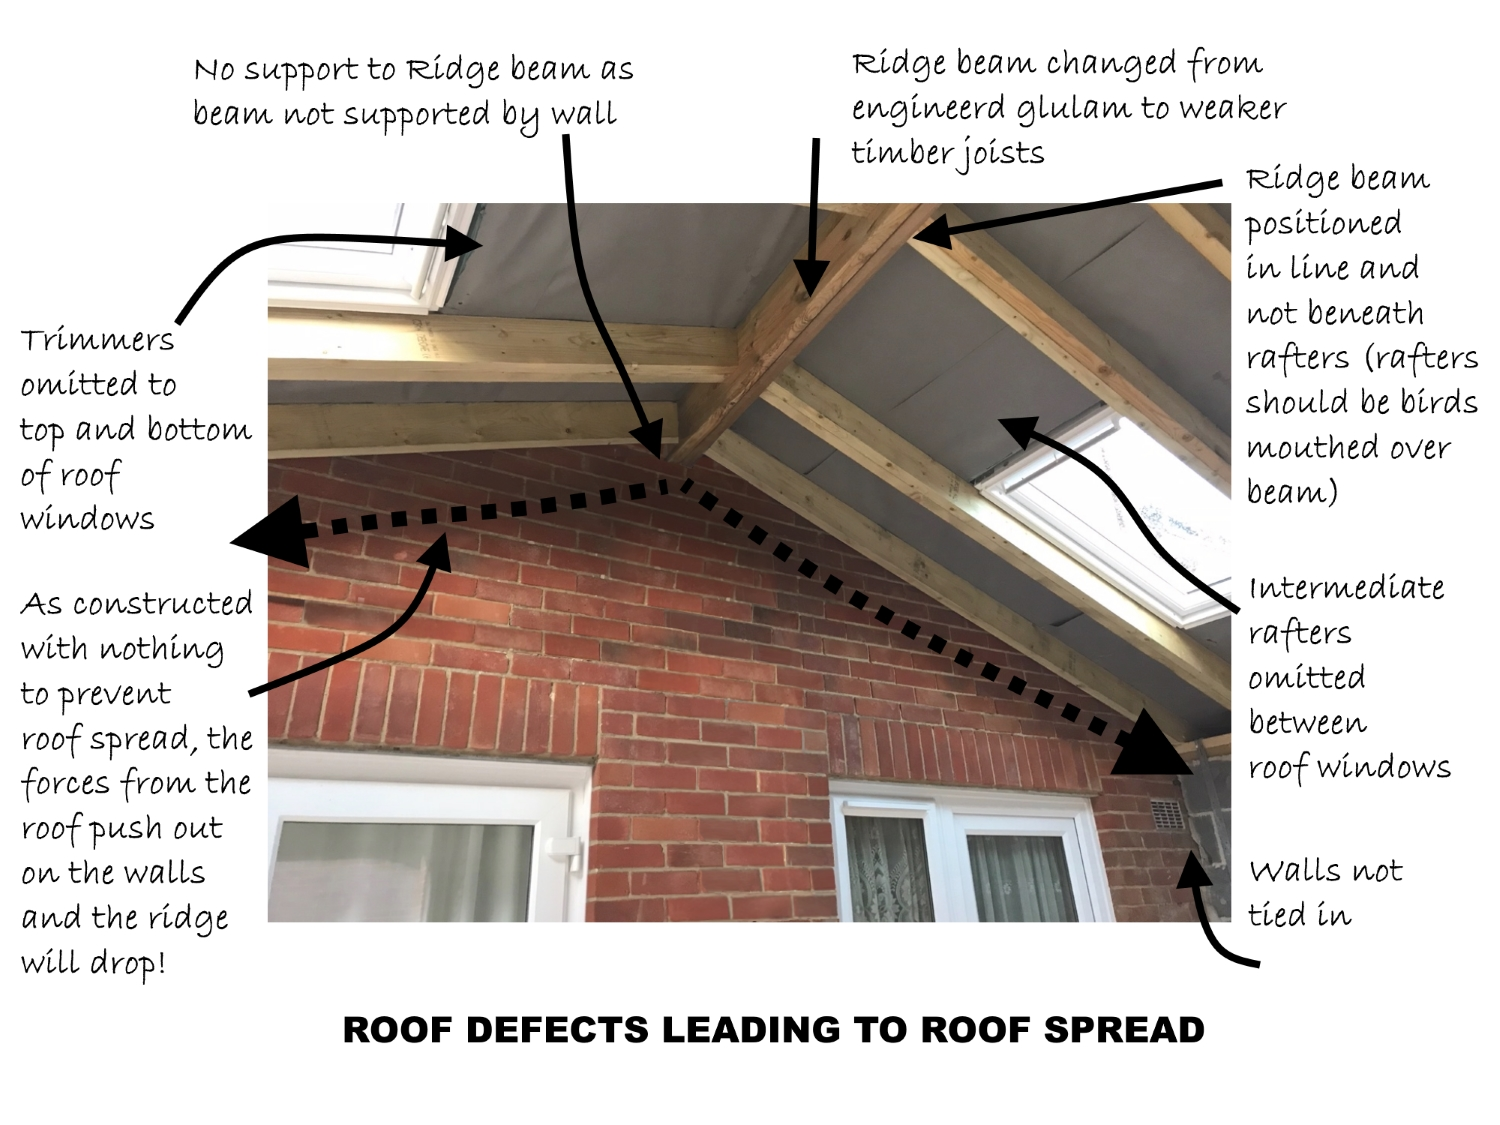 Roof spread 2